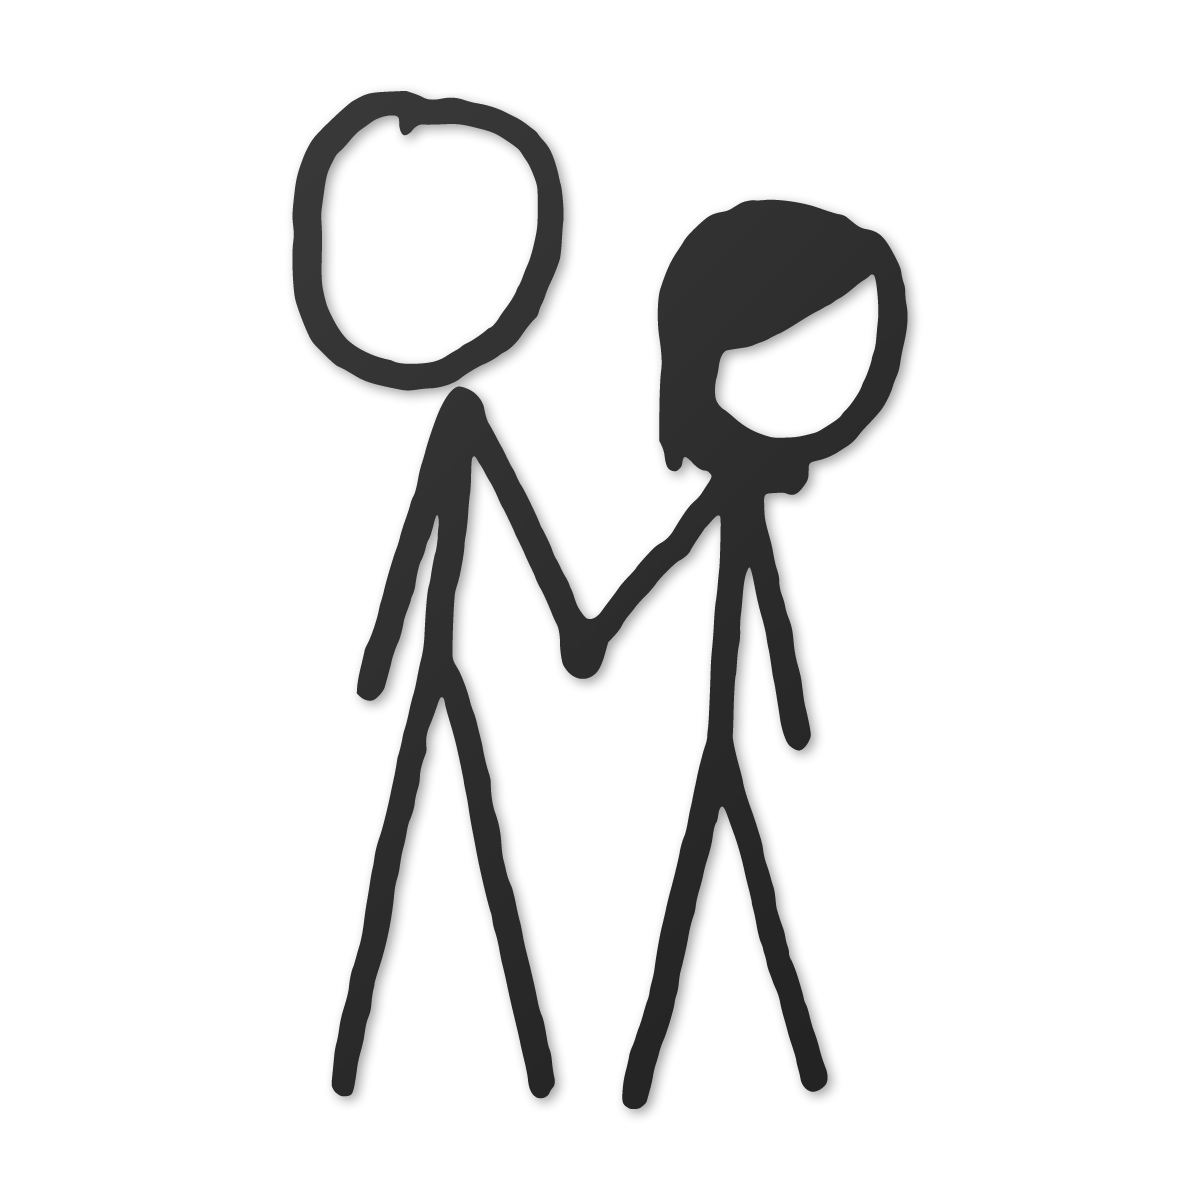 Free Stick Figures, Download Free Clip Art, Free Clip Art on Clipart.